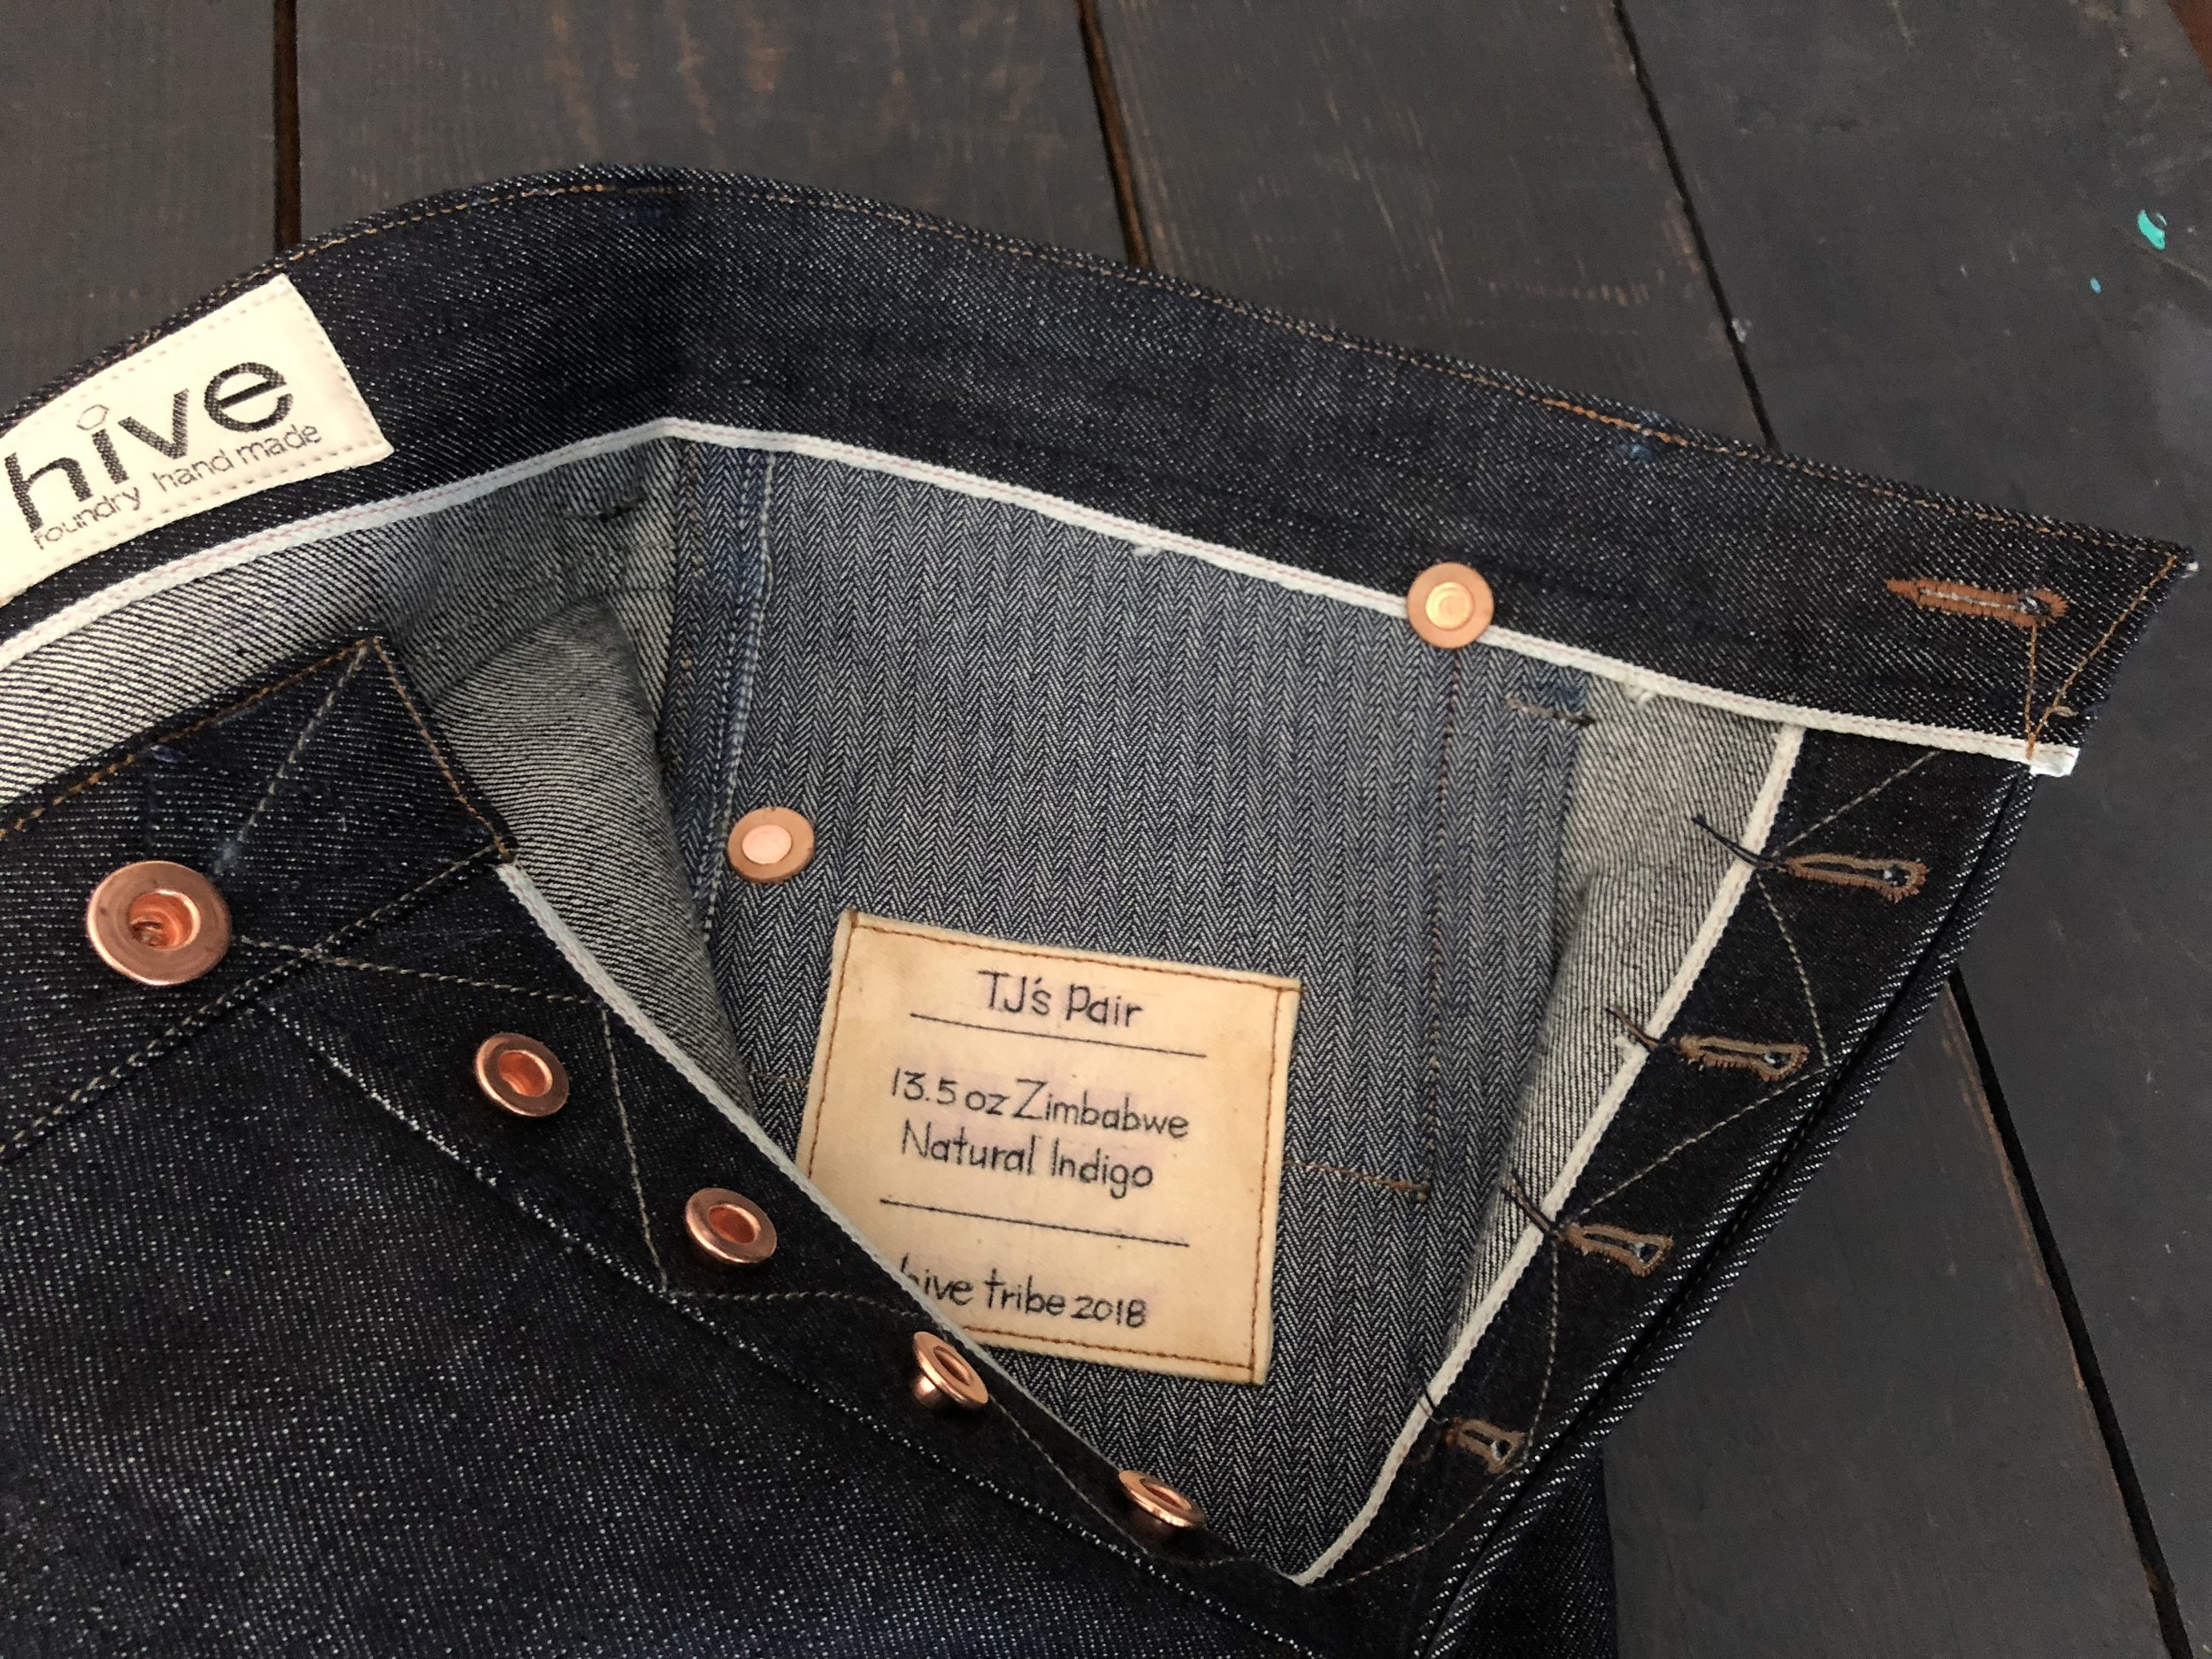 One piece selvedge fly - Standard